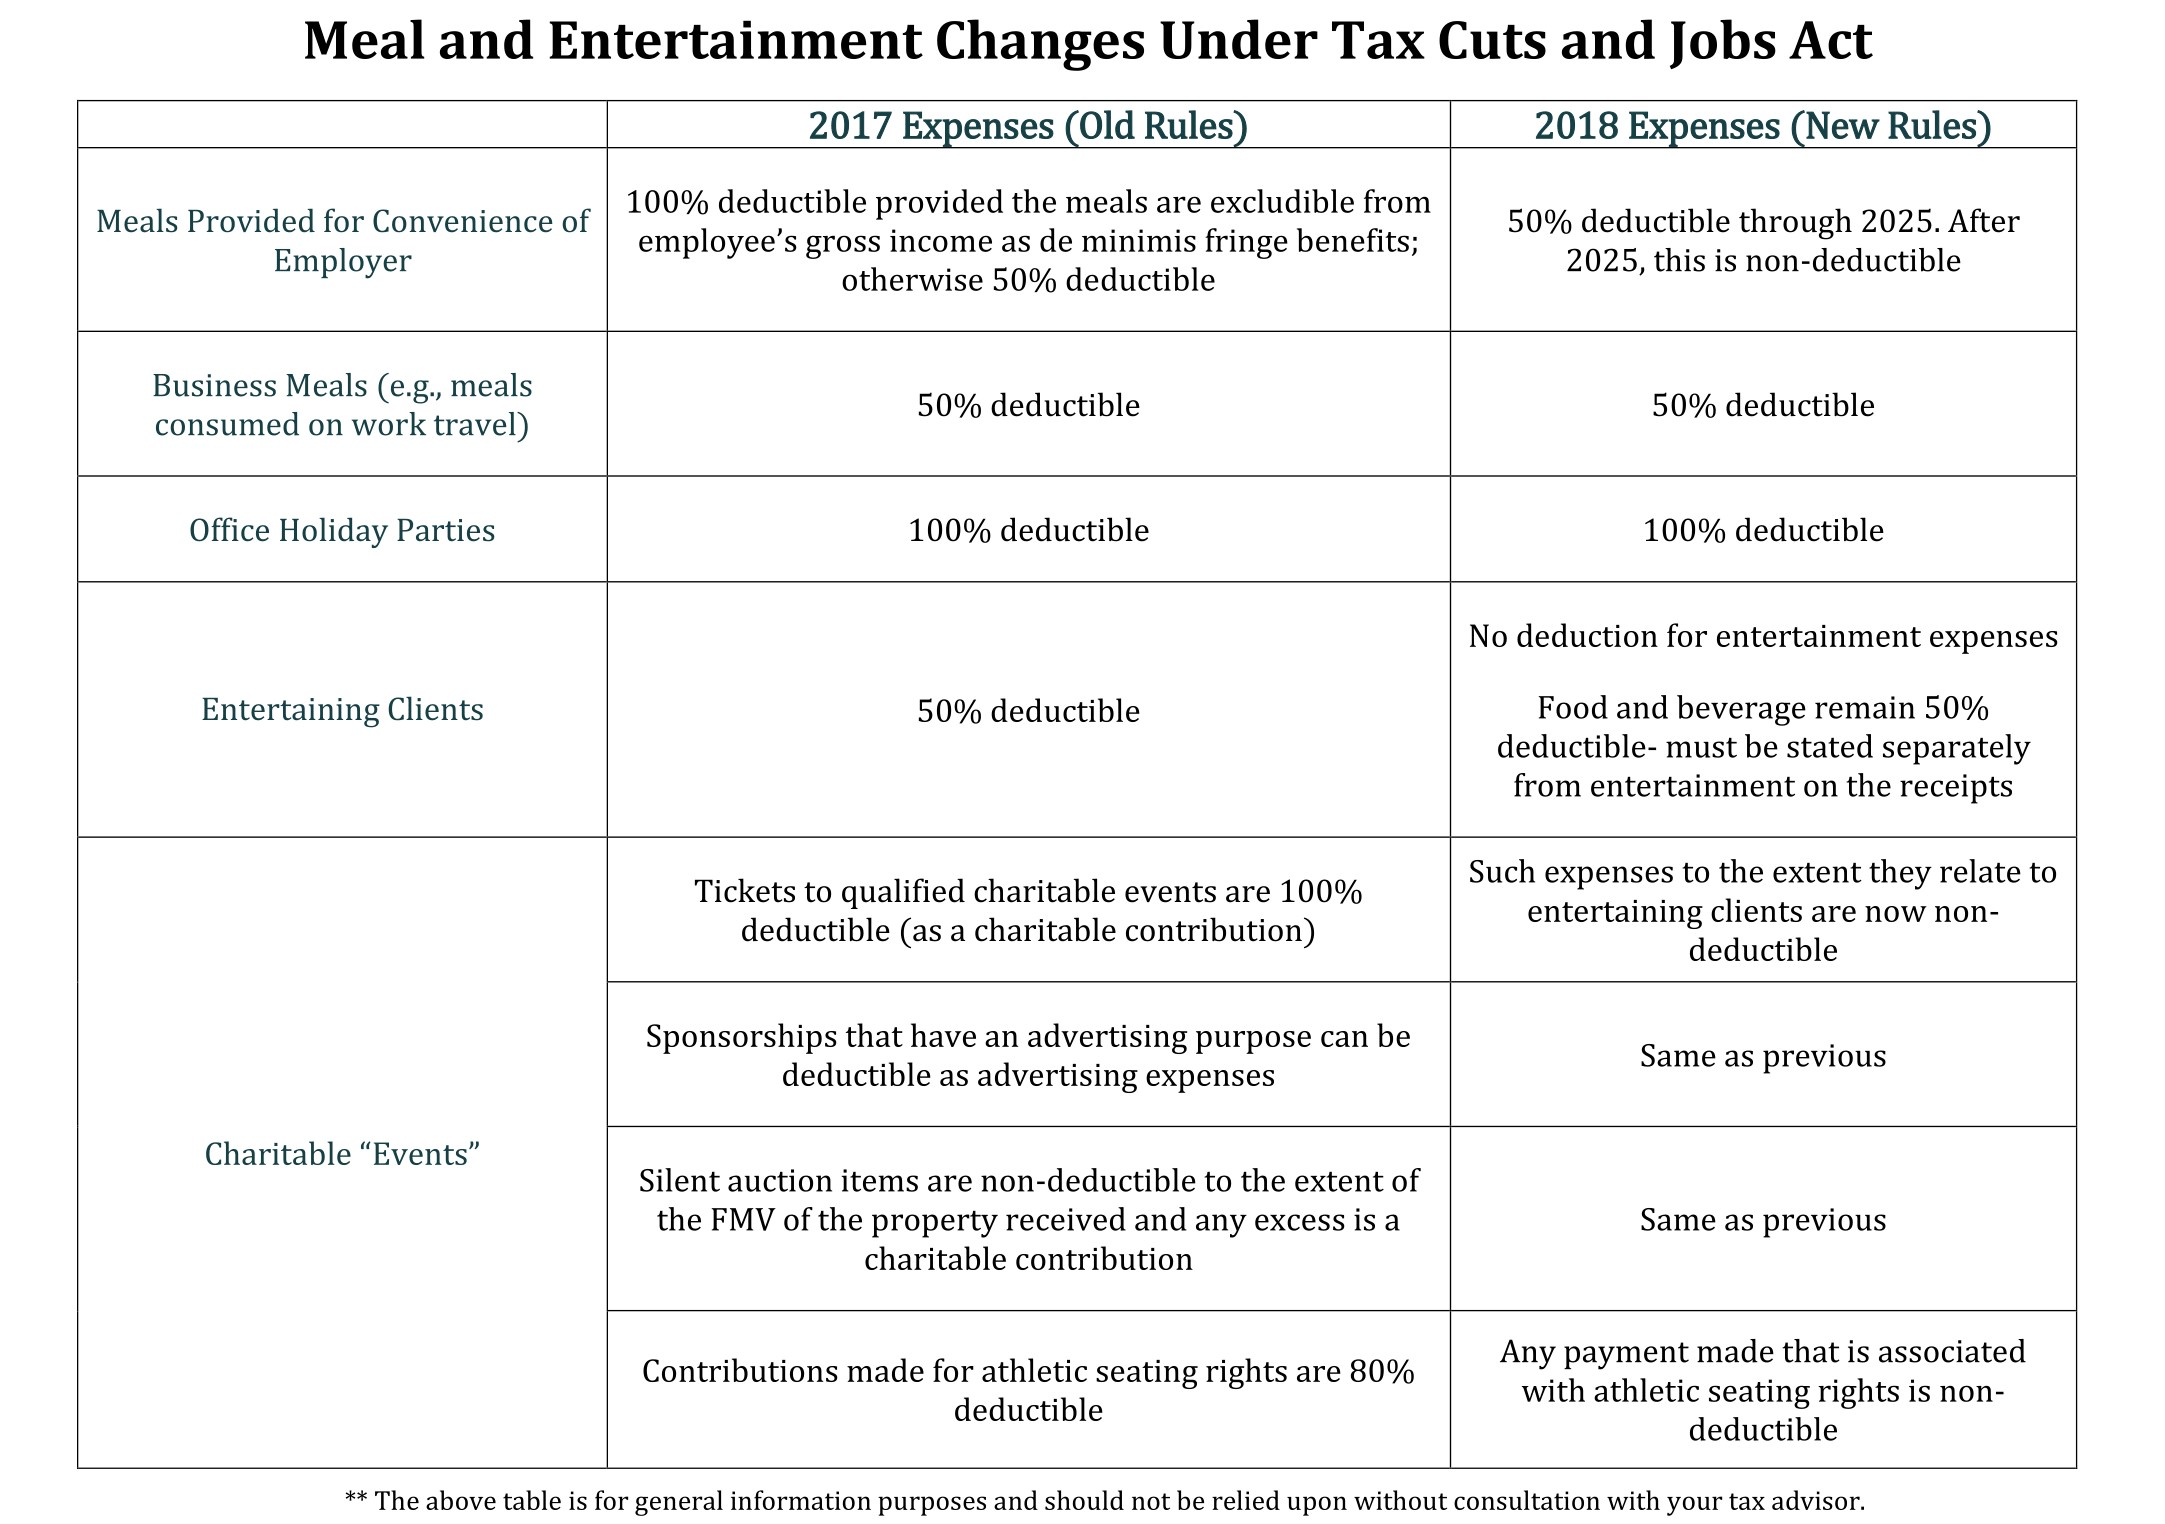 Meal and Entertainment Changes